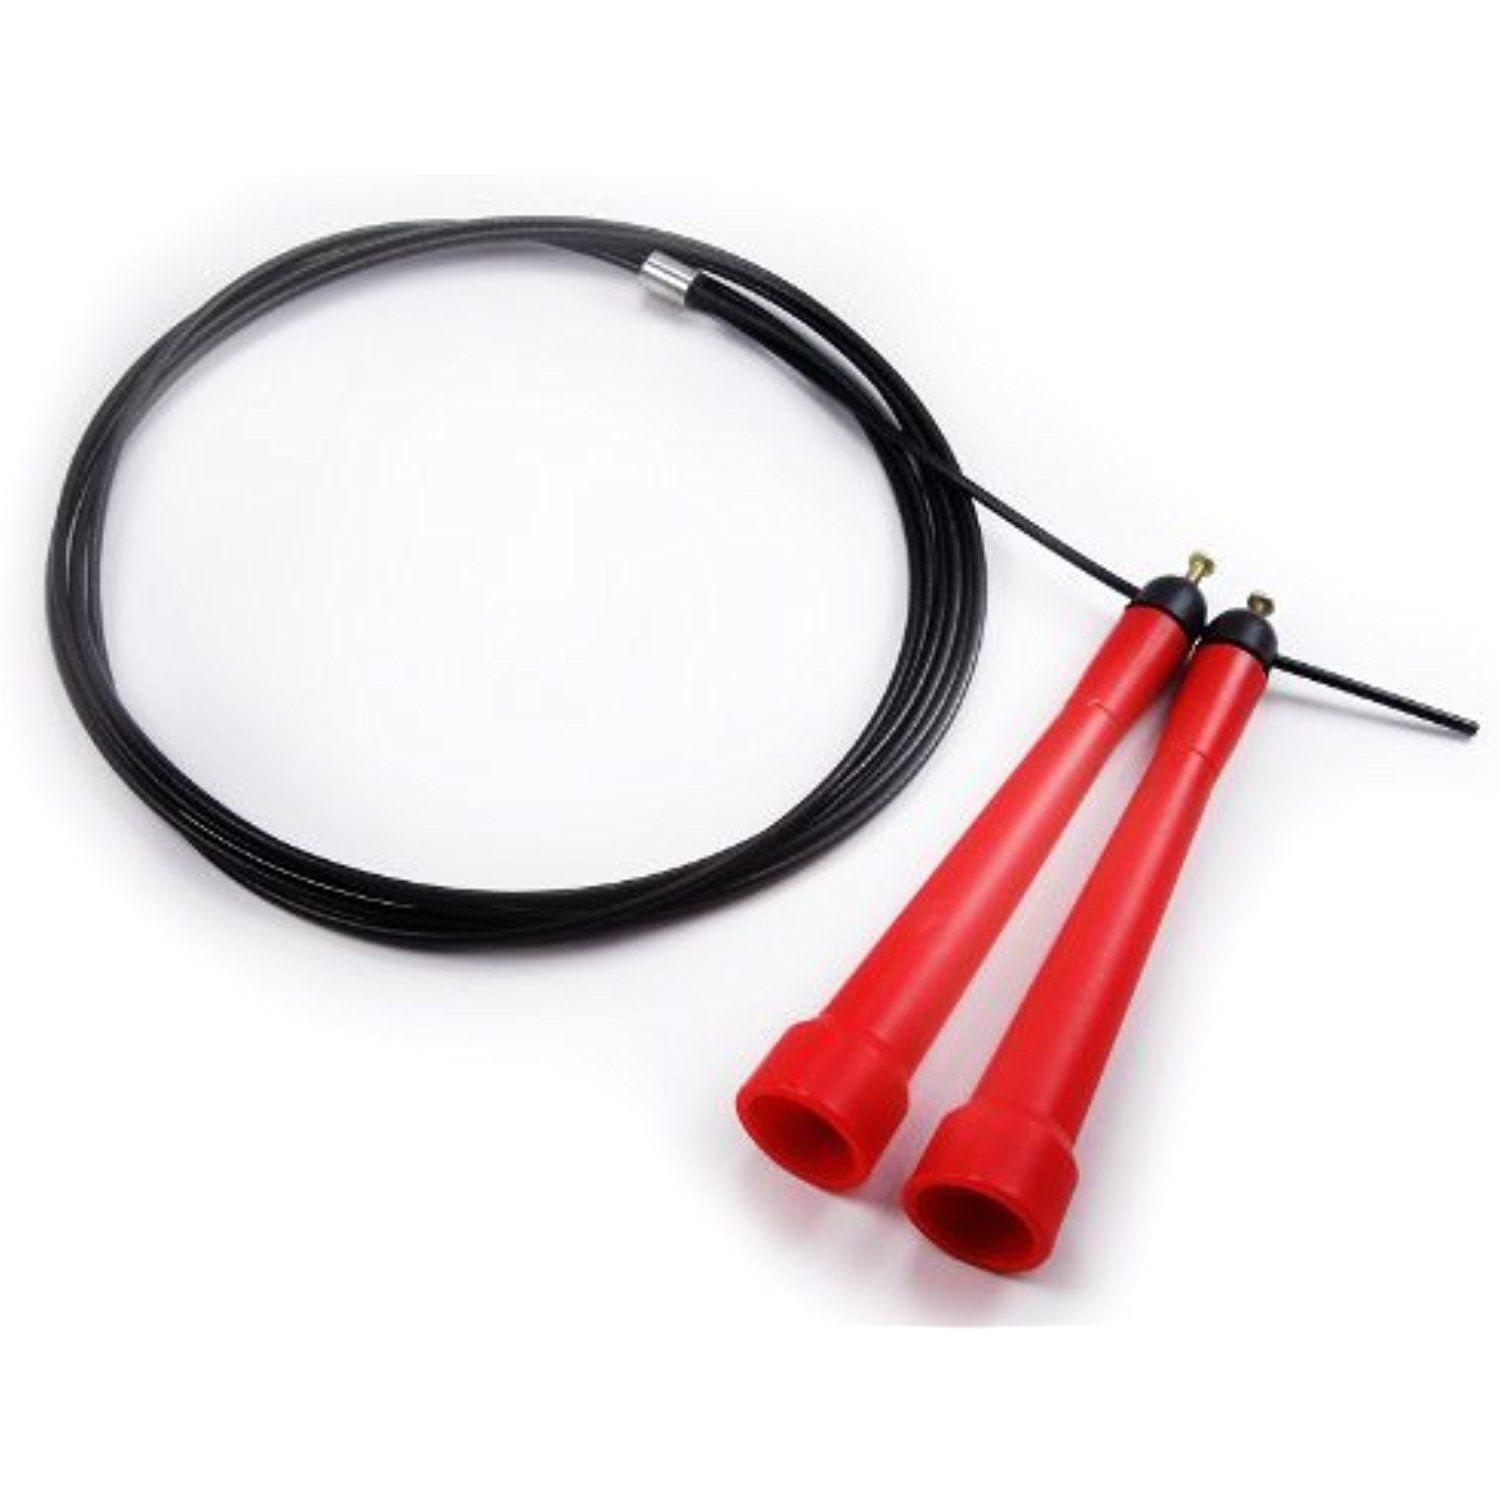 Buy Jump Ropes Quad Speed Cable Jump Rope You Can Get More Details By Clicking On The Image This Is An Affiliate Link Jumpropes Jump Rope Jump Quad